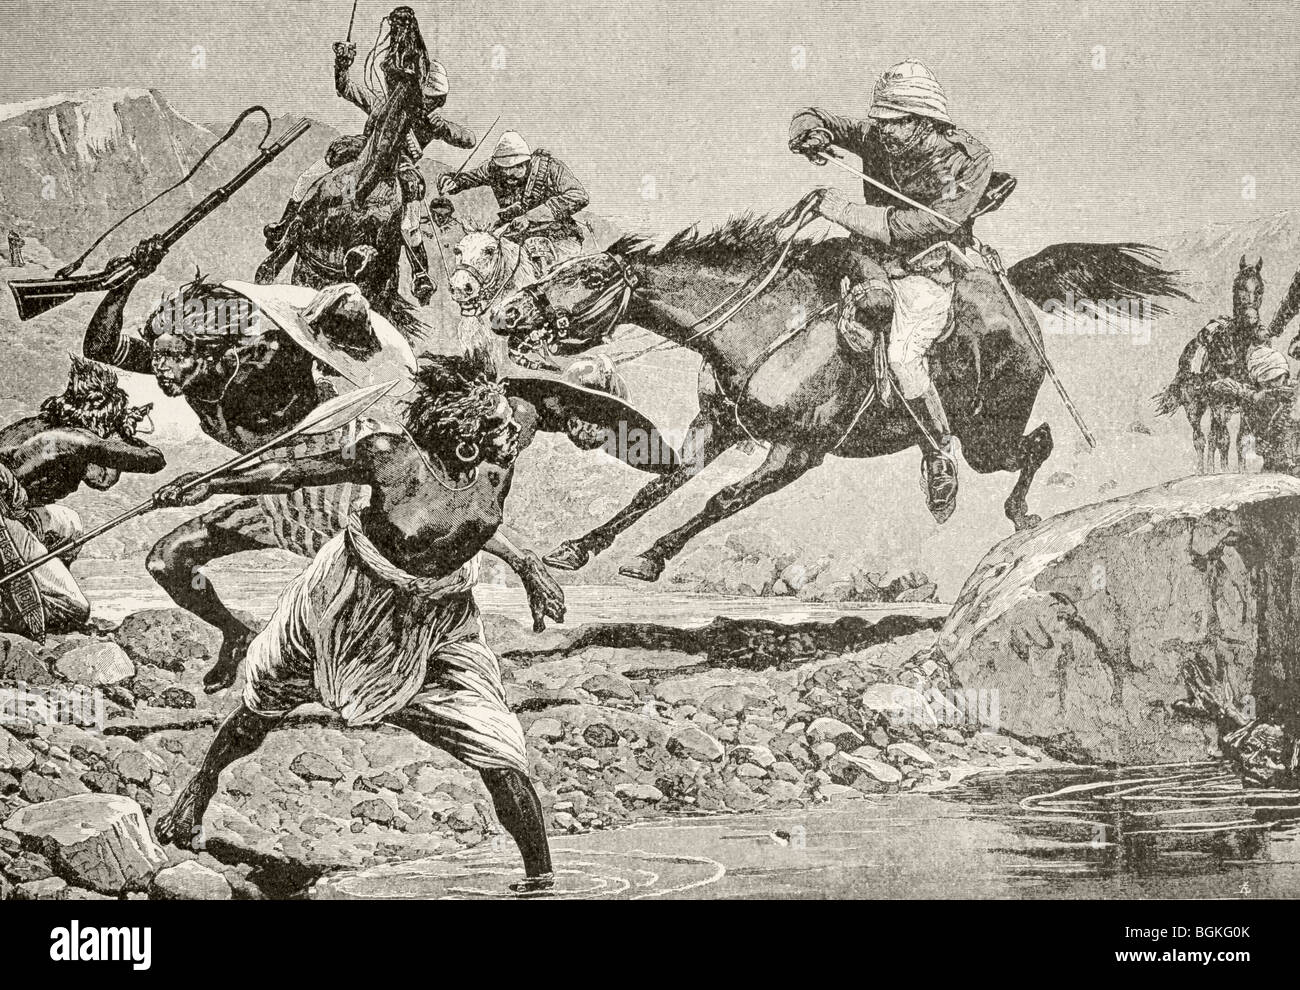 Skirmish at a waterhole in the Sudan between British cavalry and Sudanese tribesmen during the Mahdist War. - Stock Image